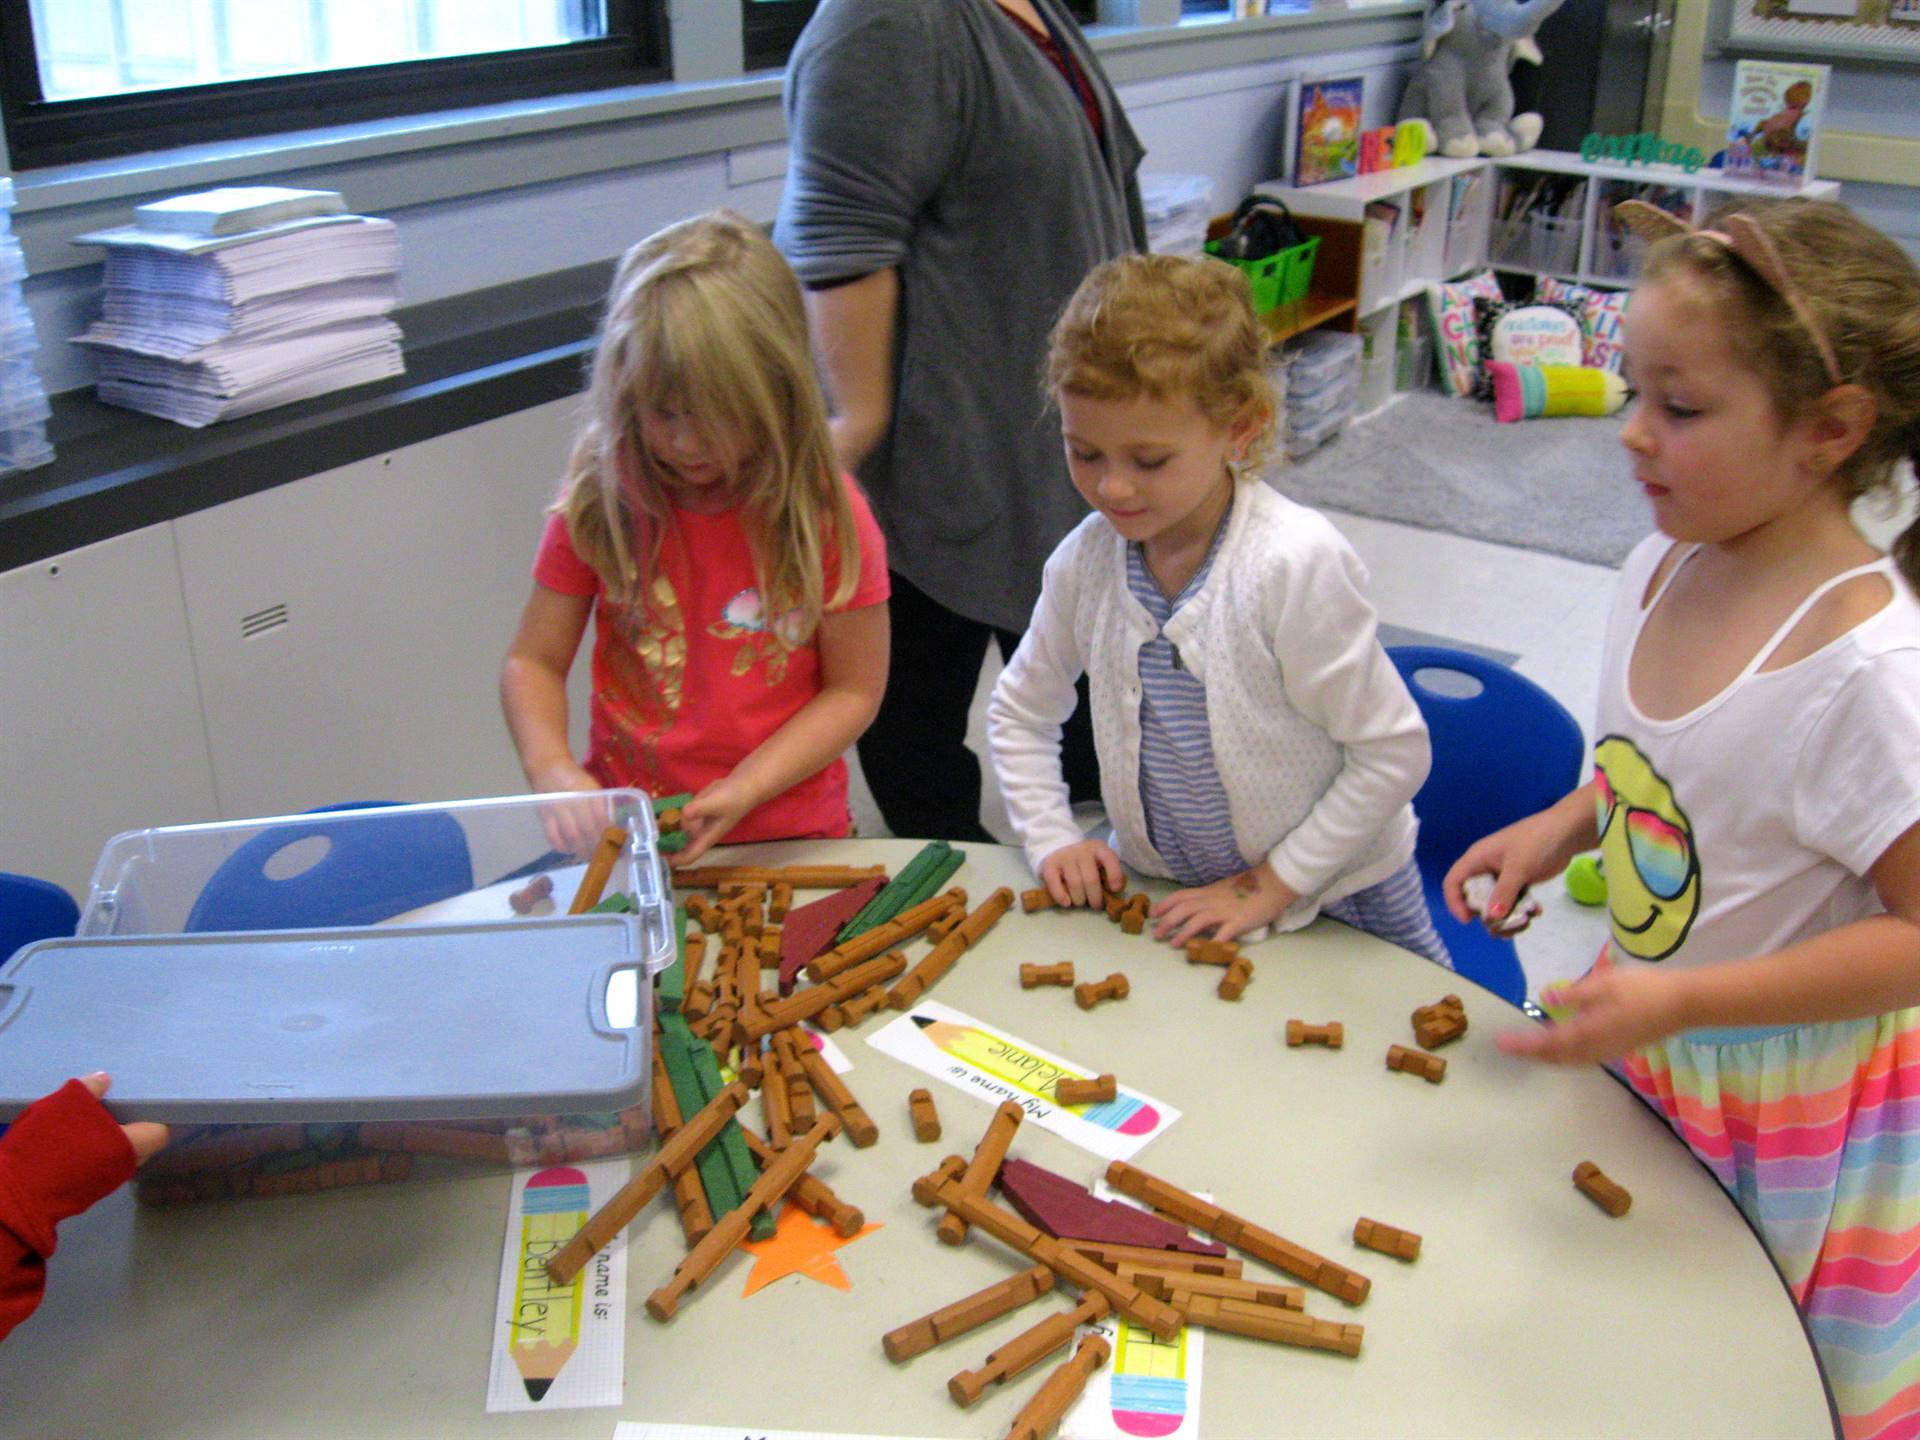 Students use helping hands to pick up.